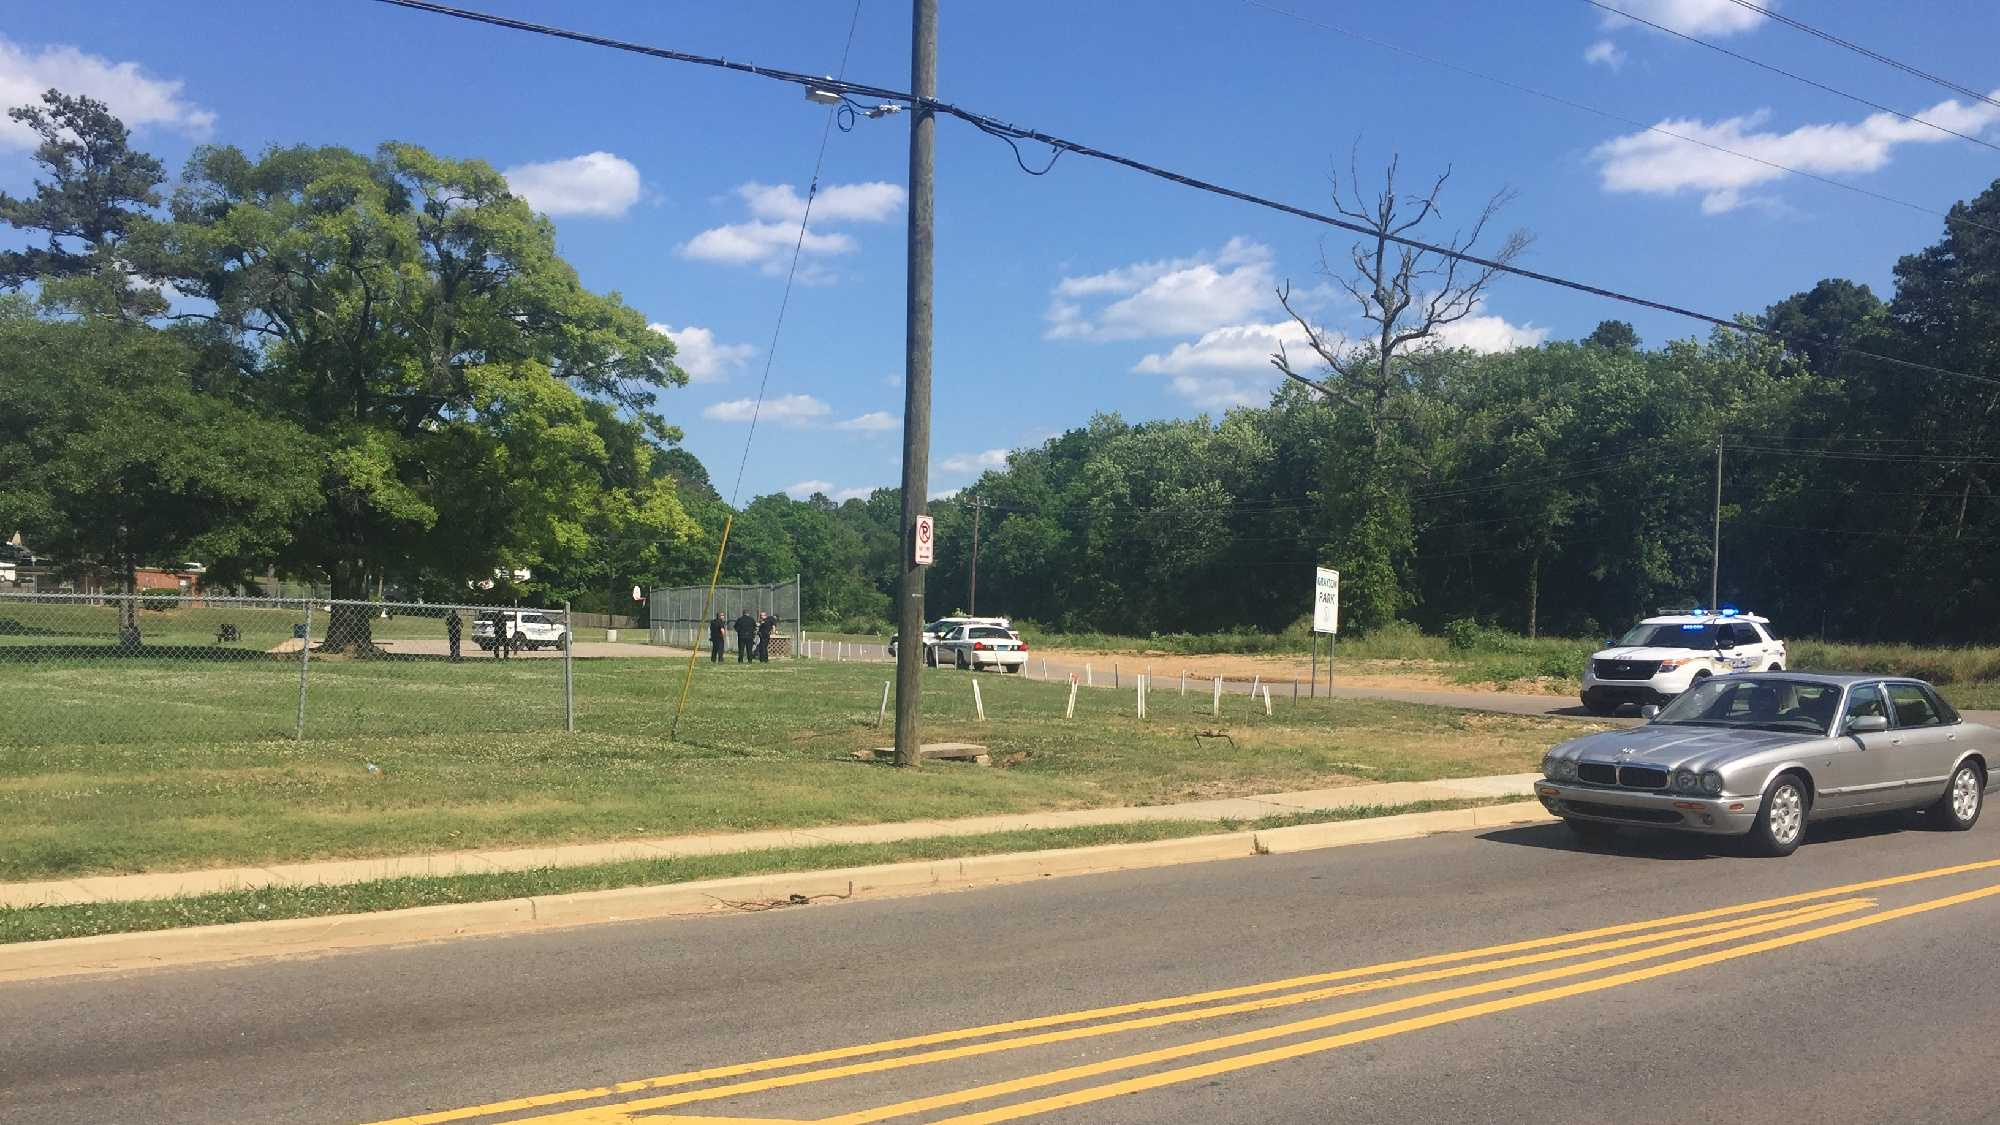 Birmingham police are investigating a shooting in which sent two boys to the hospital Sunday afternoon.